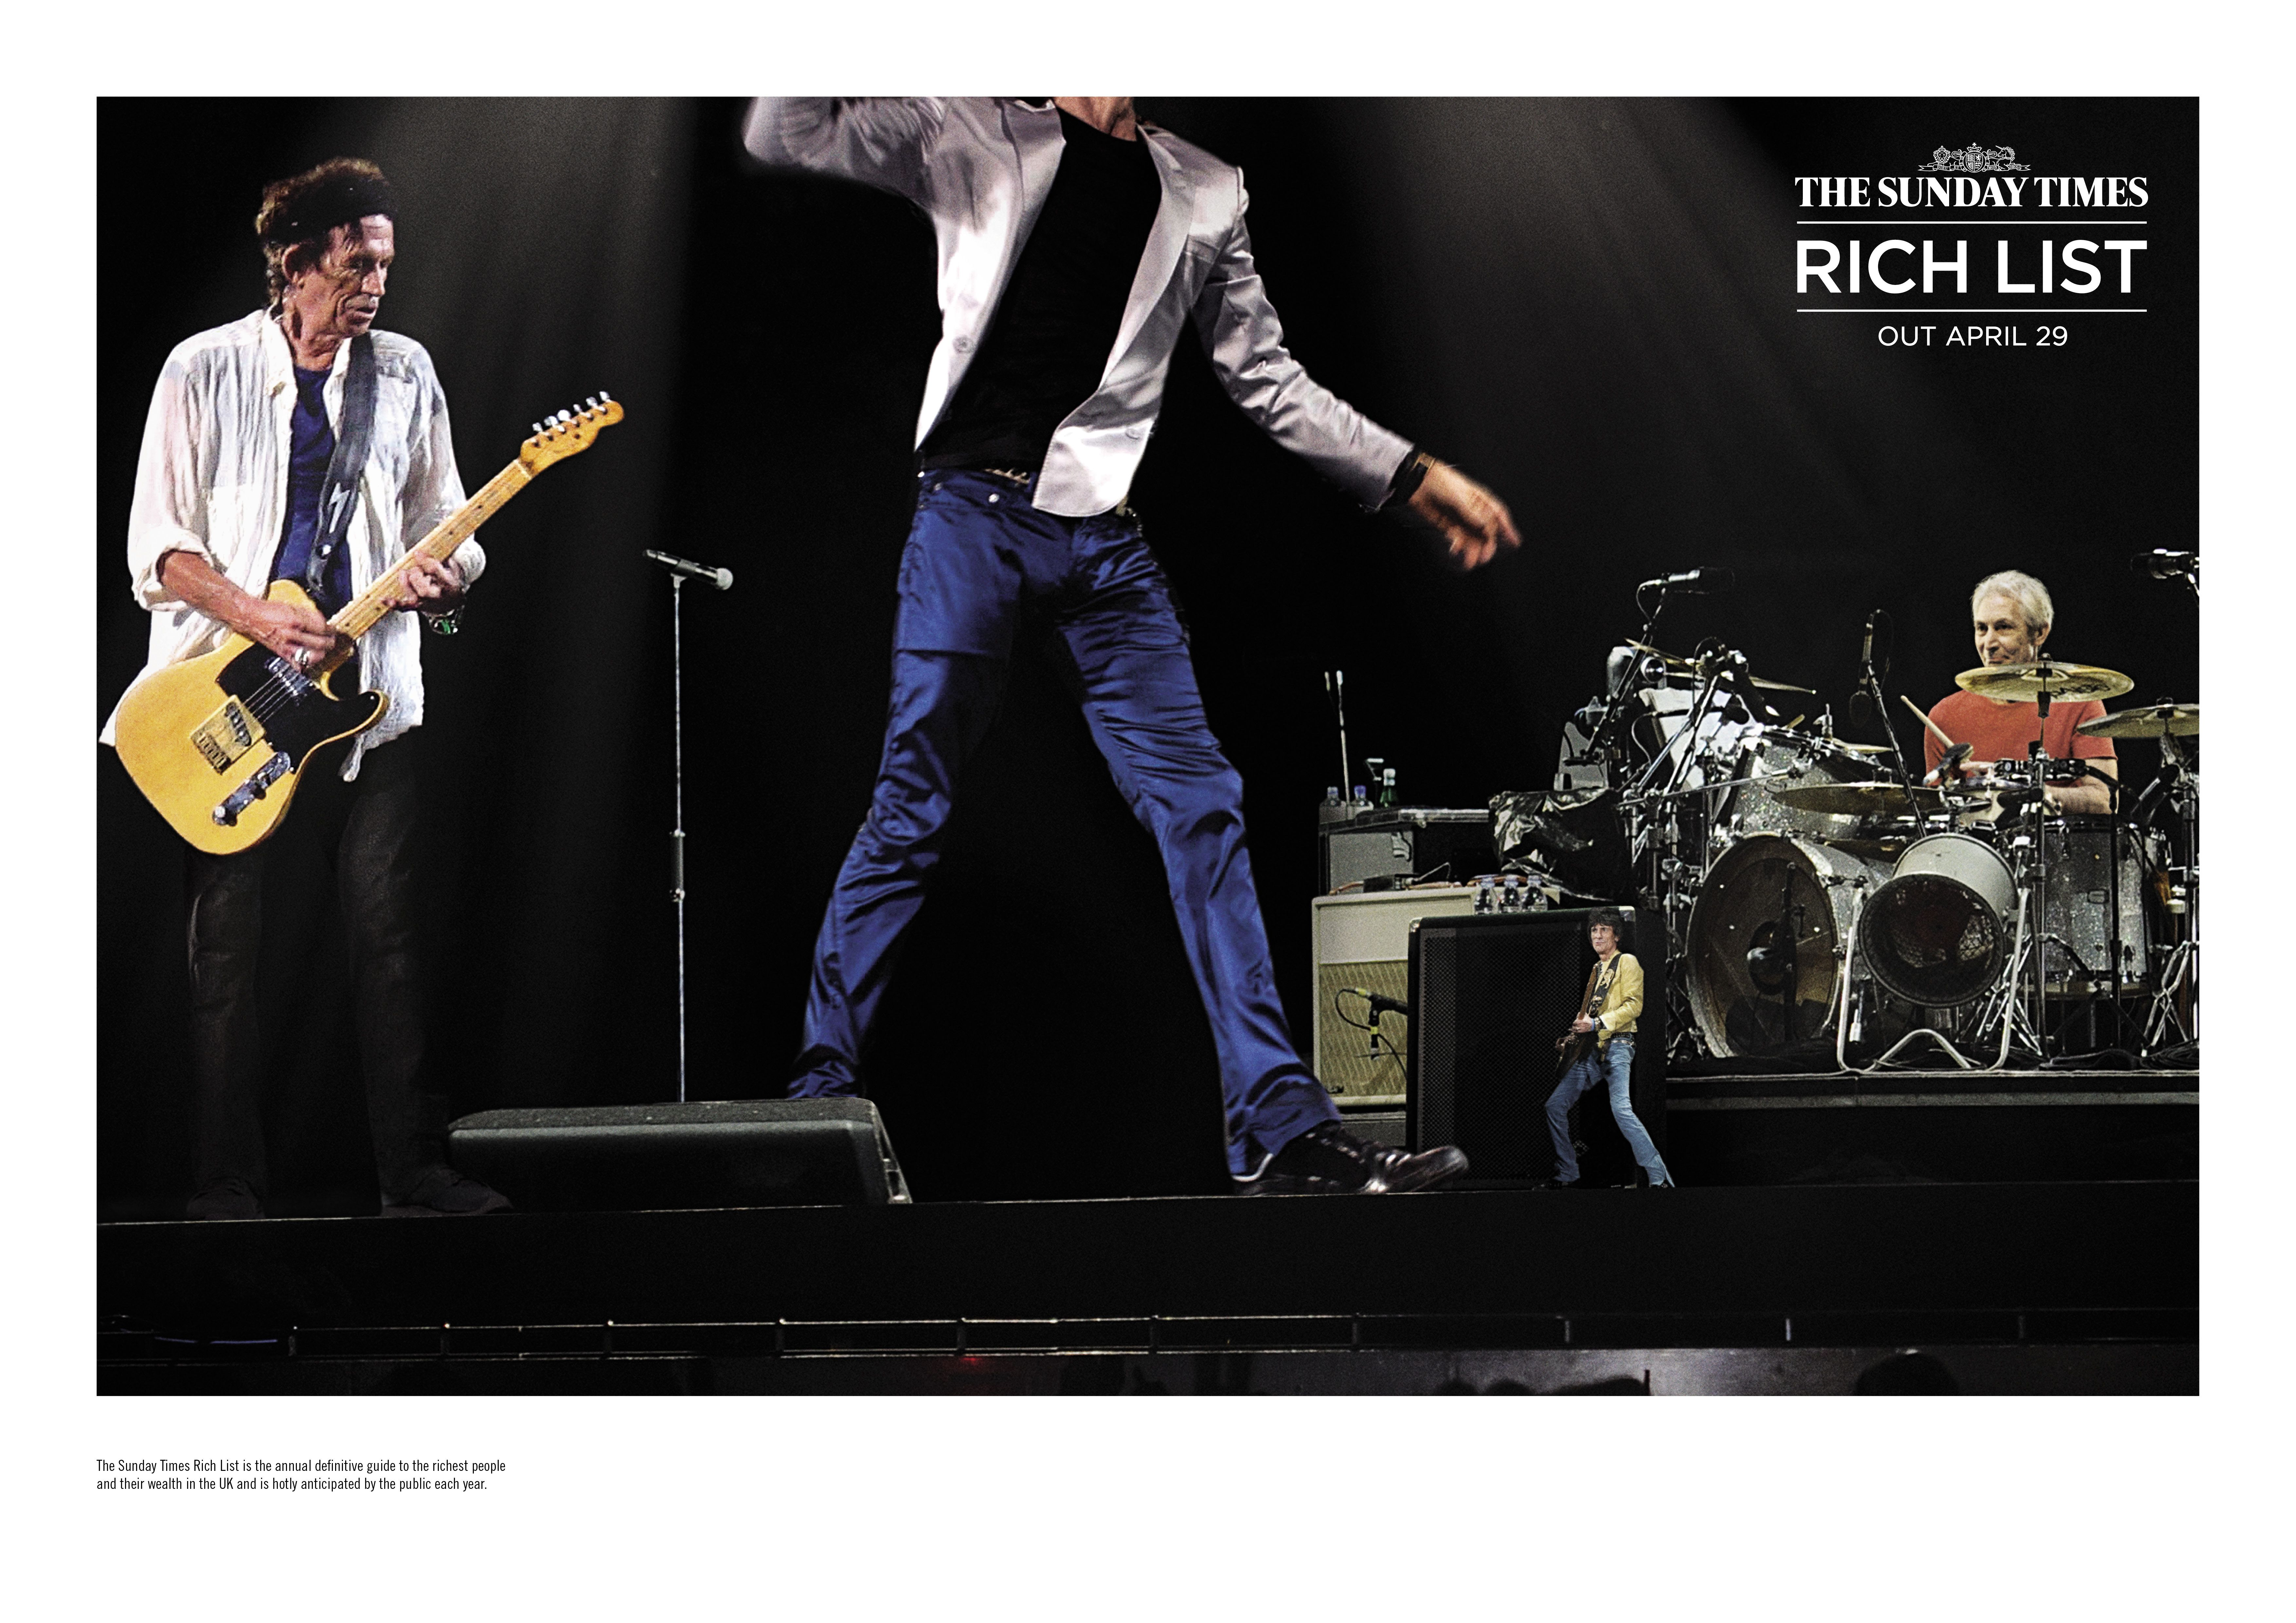 AWARD: CRISTAL & GRAND CRISTAL / CATEGORY: MEDIA / CAMPAIGN: The Sunday Times Rich List campaign: Rolling Stones / ADVERTISER: CHI & Partners / News International / AGENCY: CHI & Partners, UK